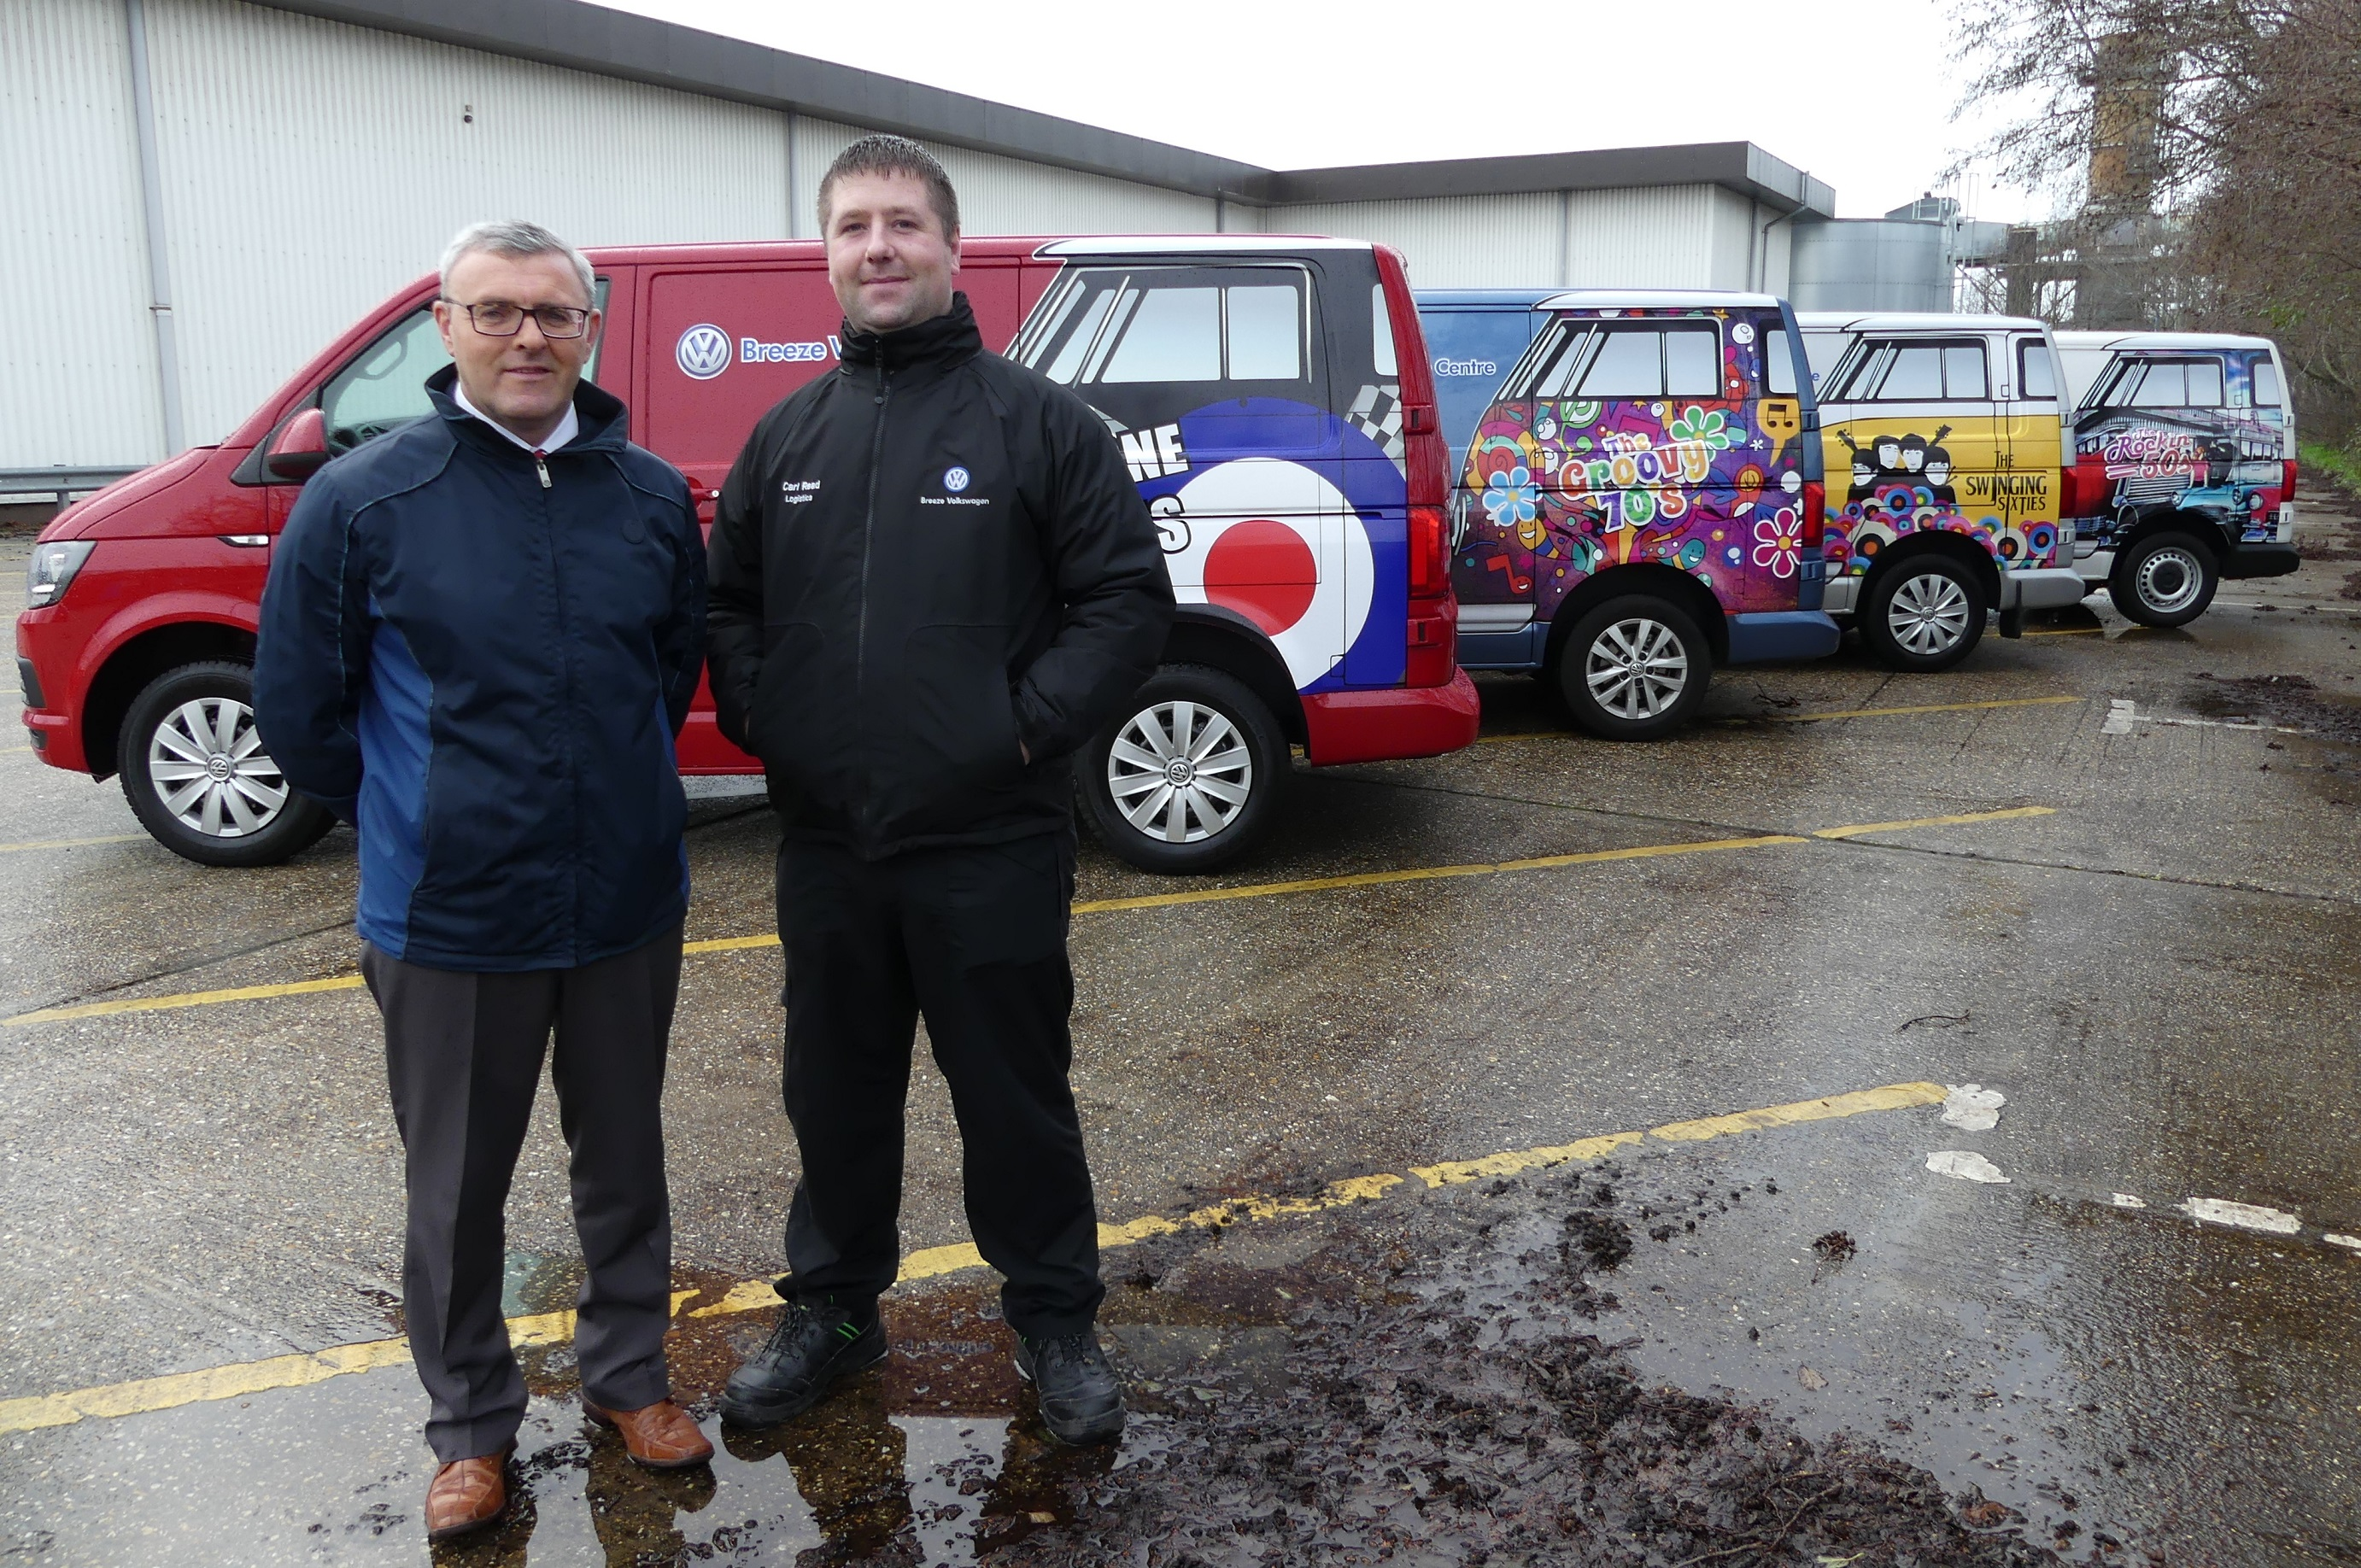 Paul O'Brien and Carl Jones of Breeze Volksagen with the T6 Vans